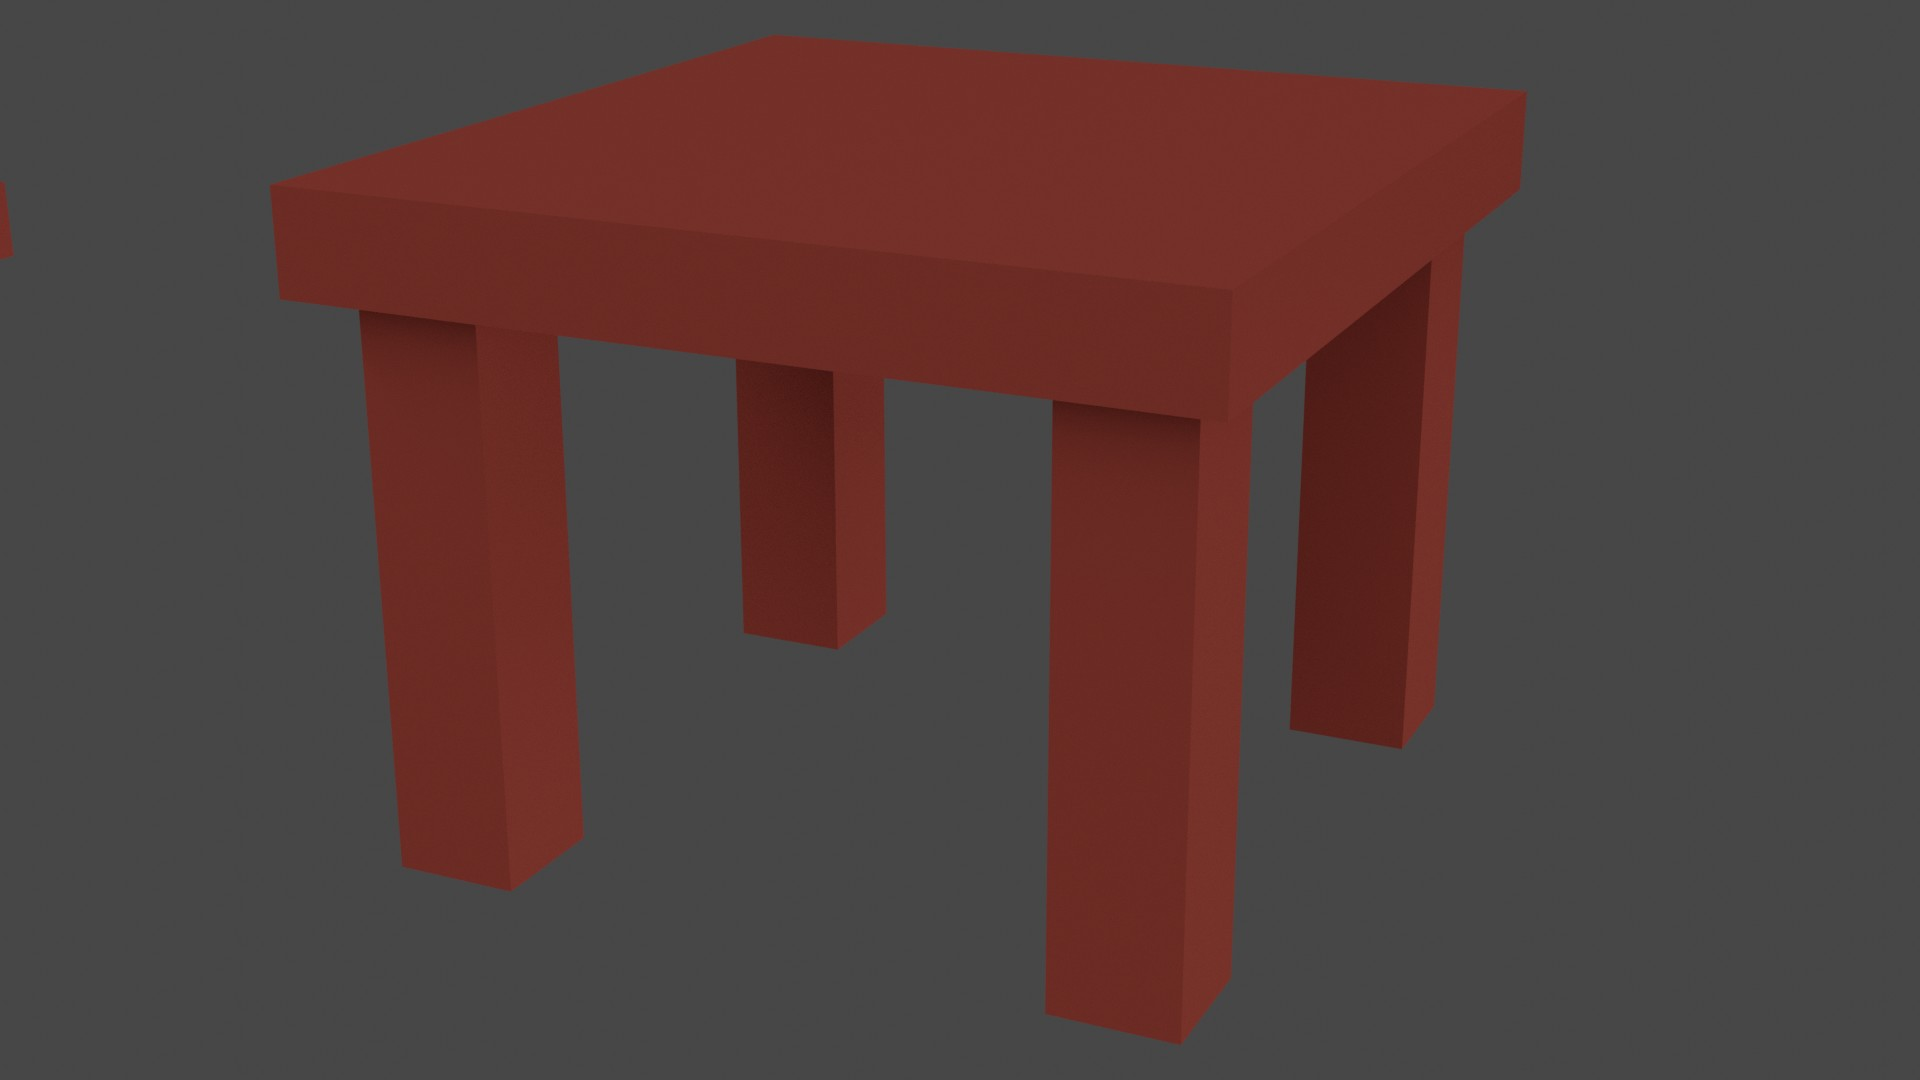 Low Poly Red Furniture 3